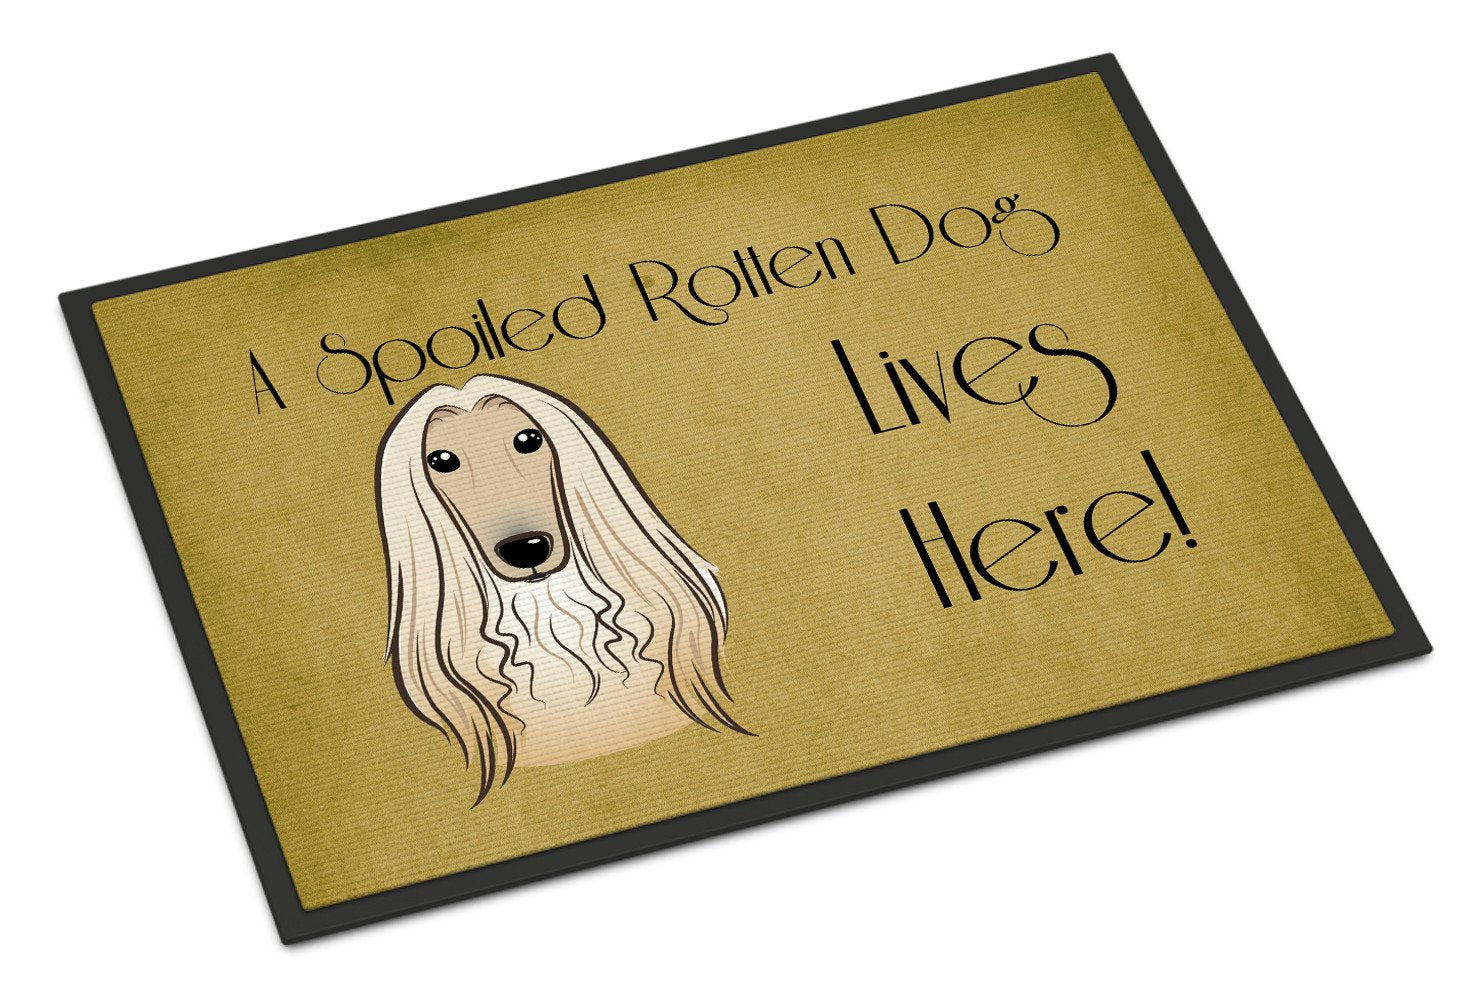 Afghan Hound Spoiled Dog Lives Here Indoor or Outdoor Mat 18x27 BB1492MAT - the-store.com